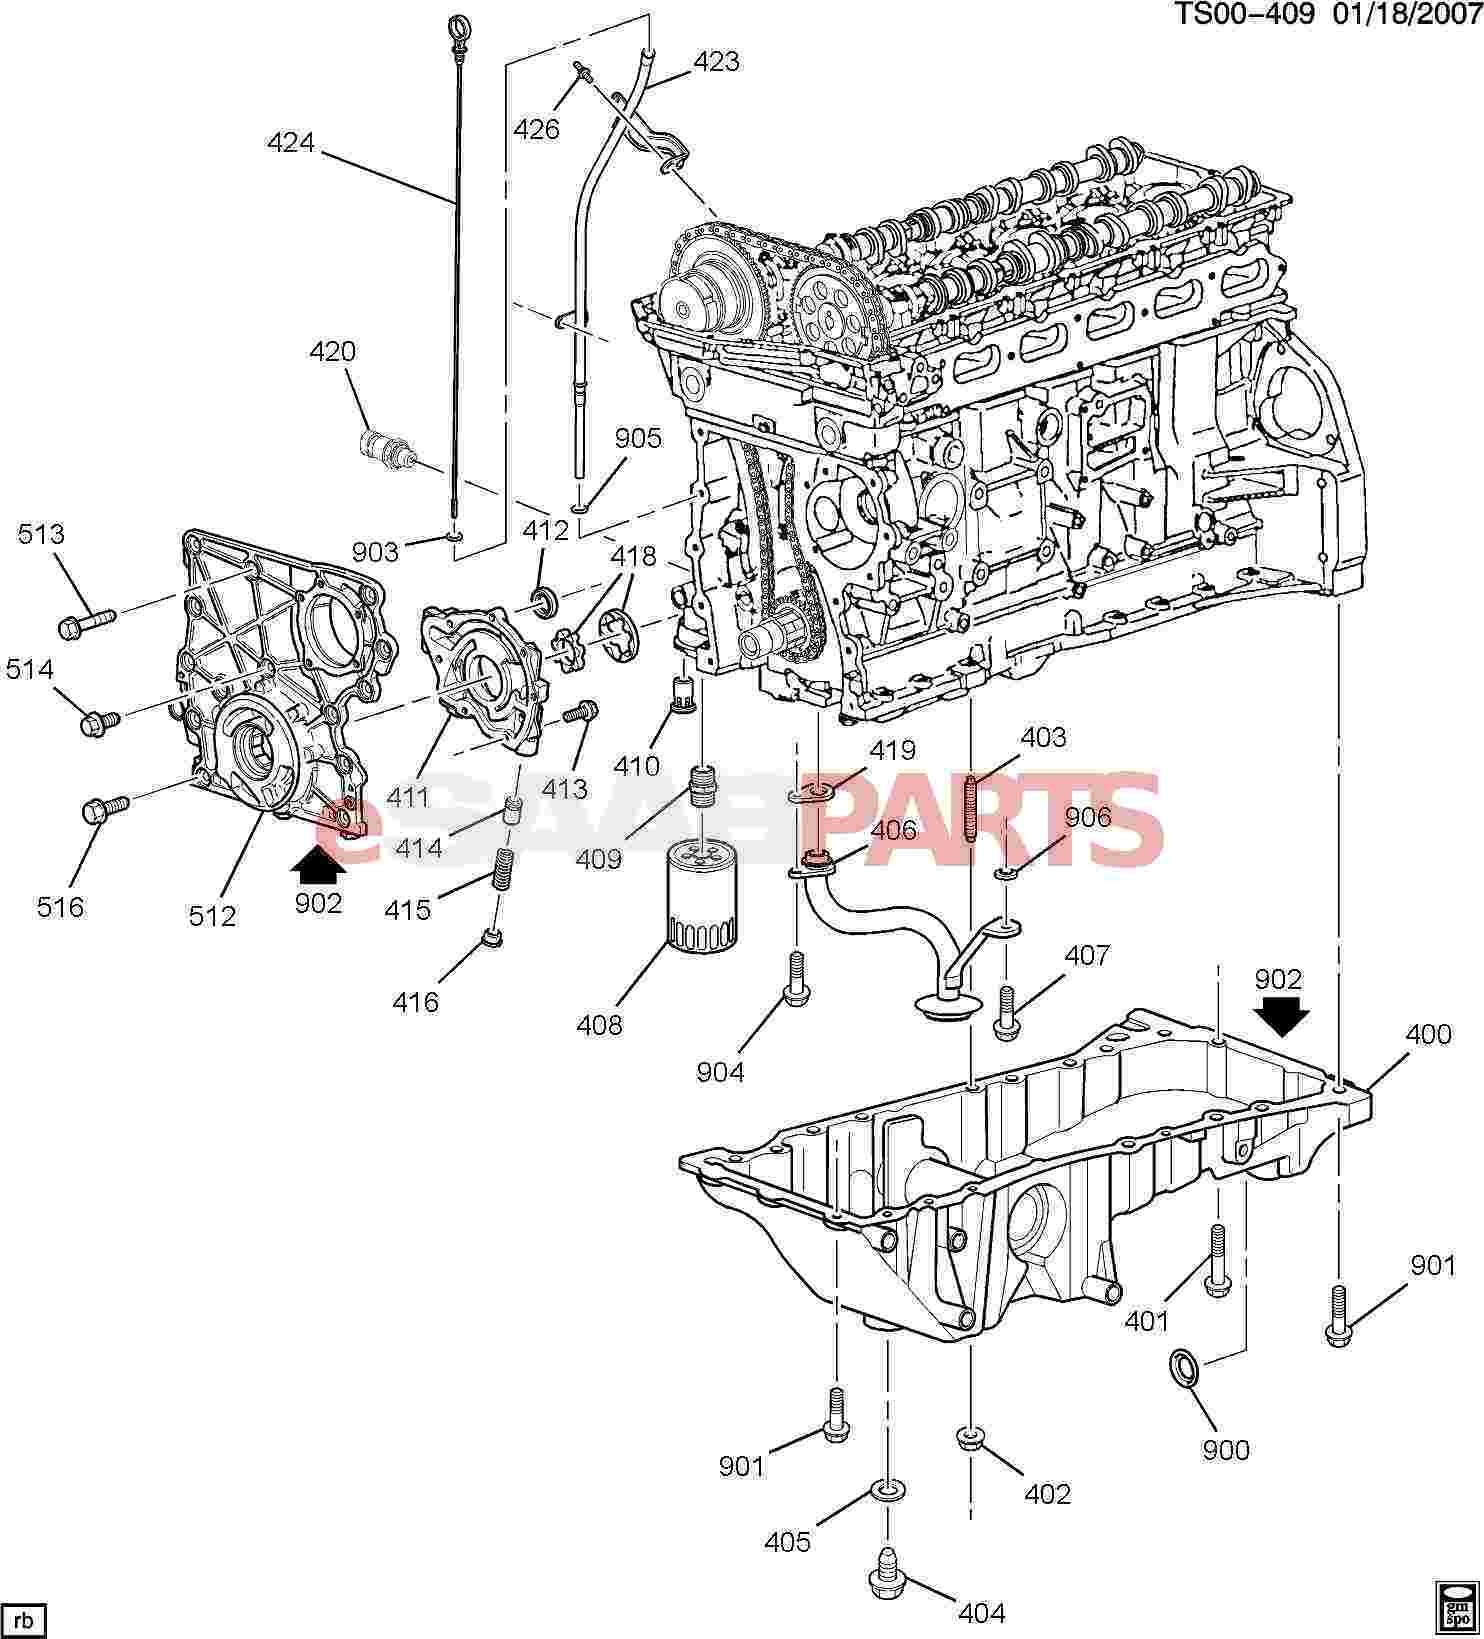 hight resolution of 2003 chevy trailblazer engine diagram my wiring diagram rh detoxicrecenze com 2002 chevrolet trailblazer engine diagram